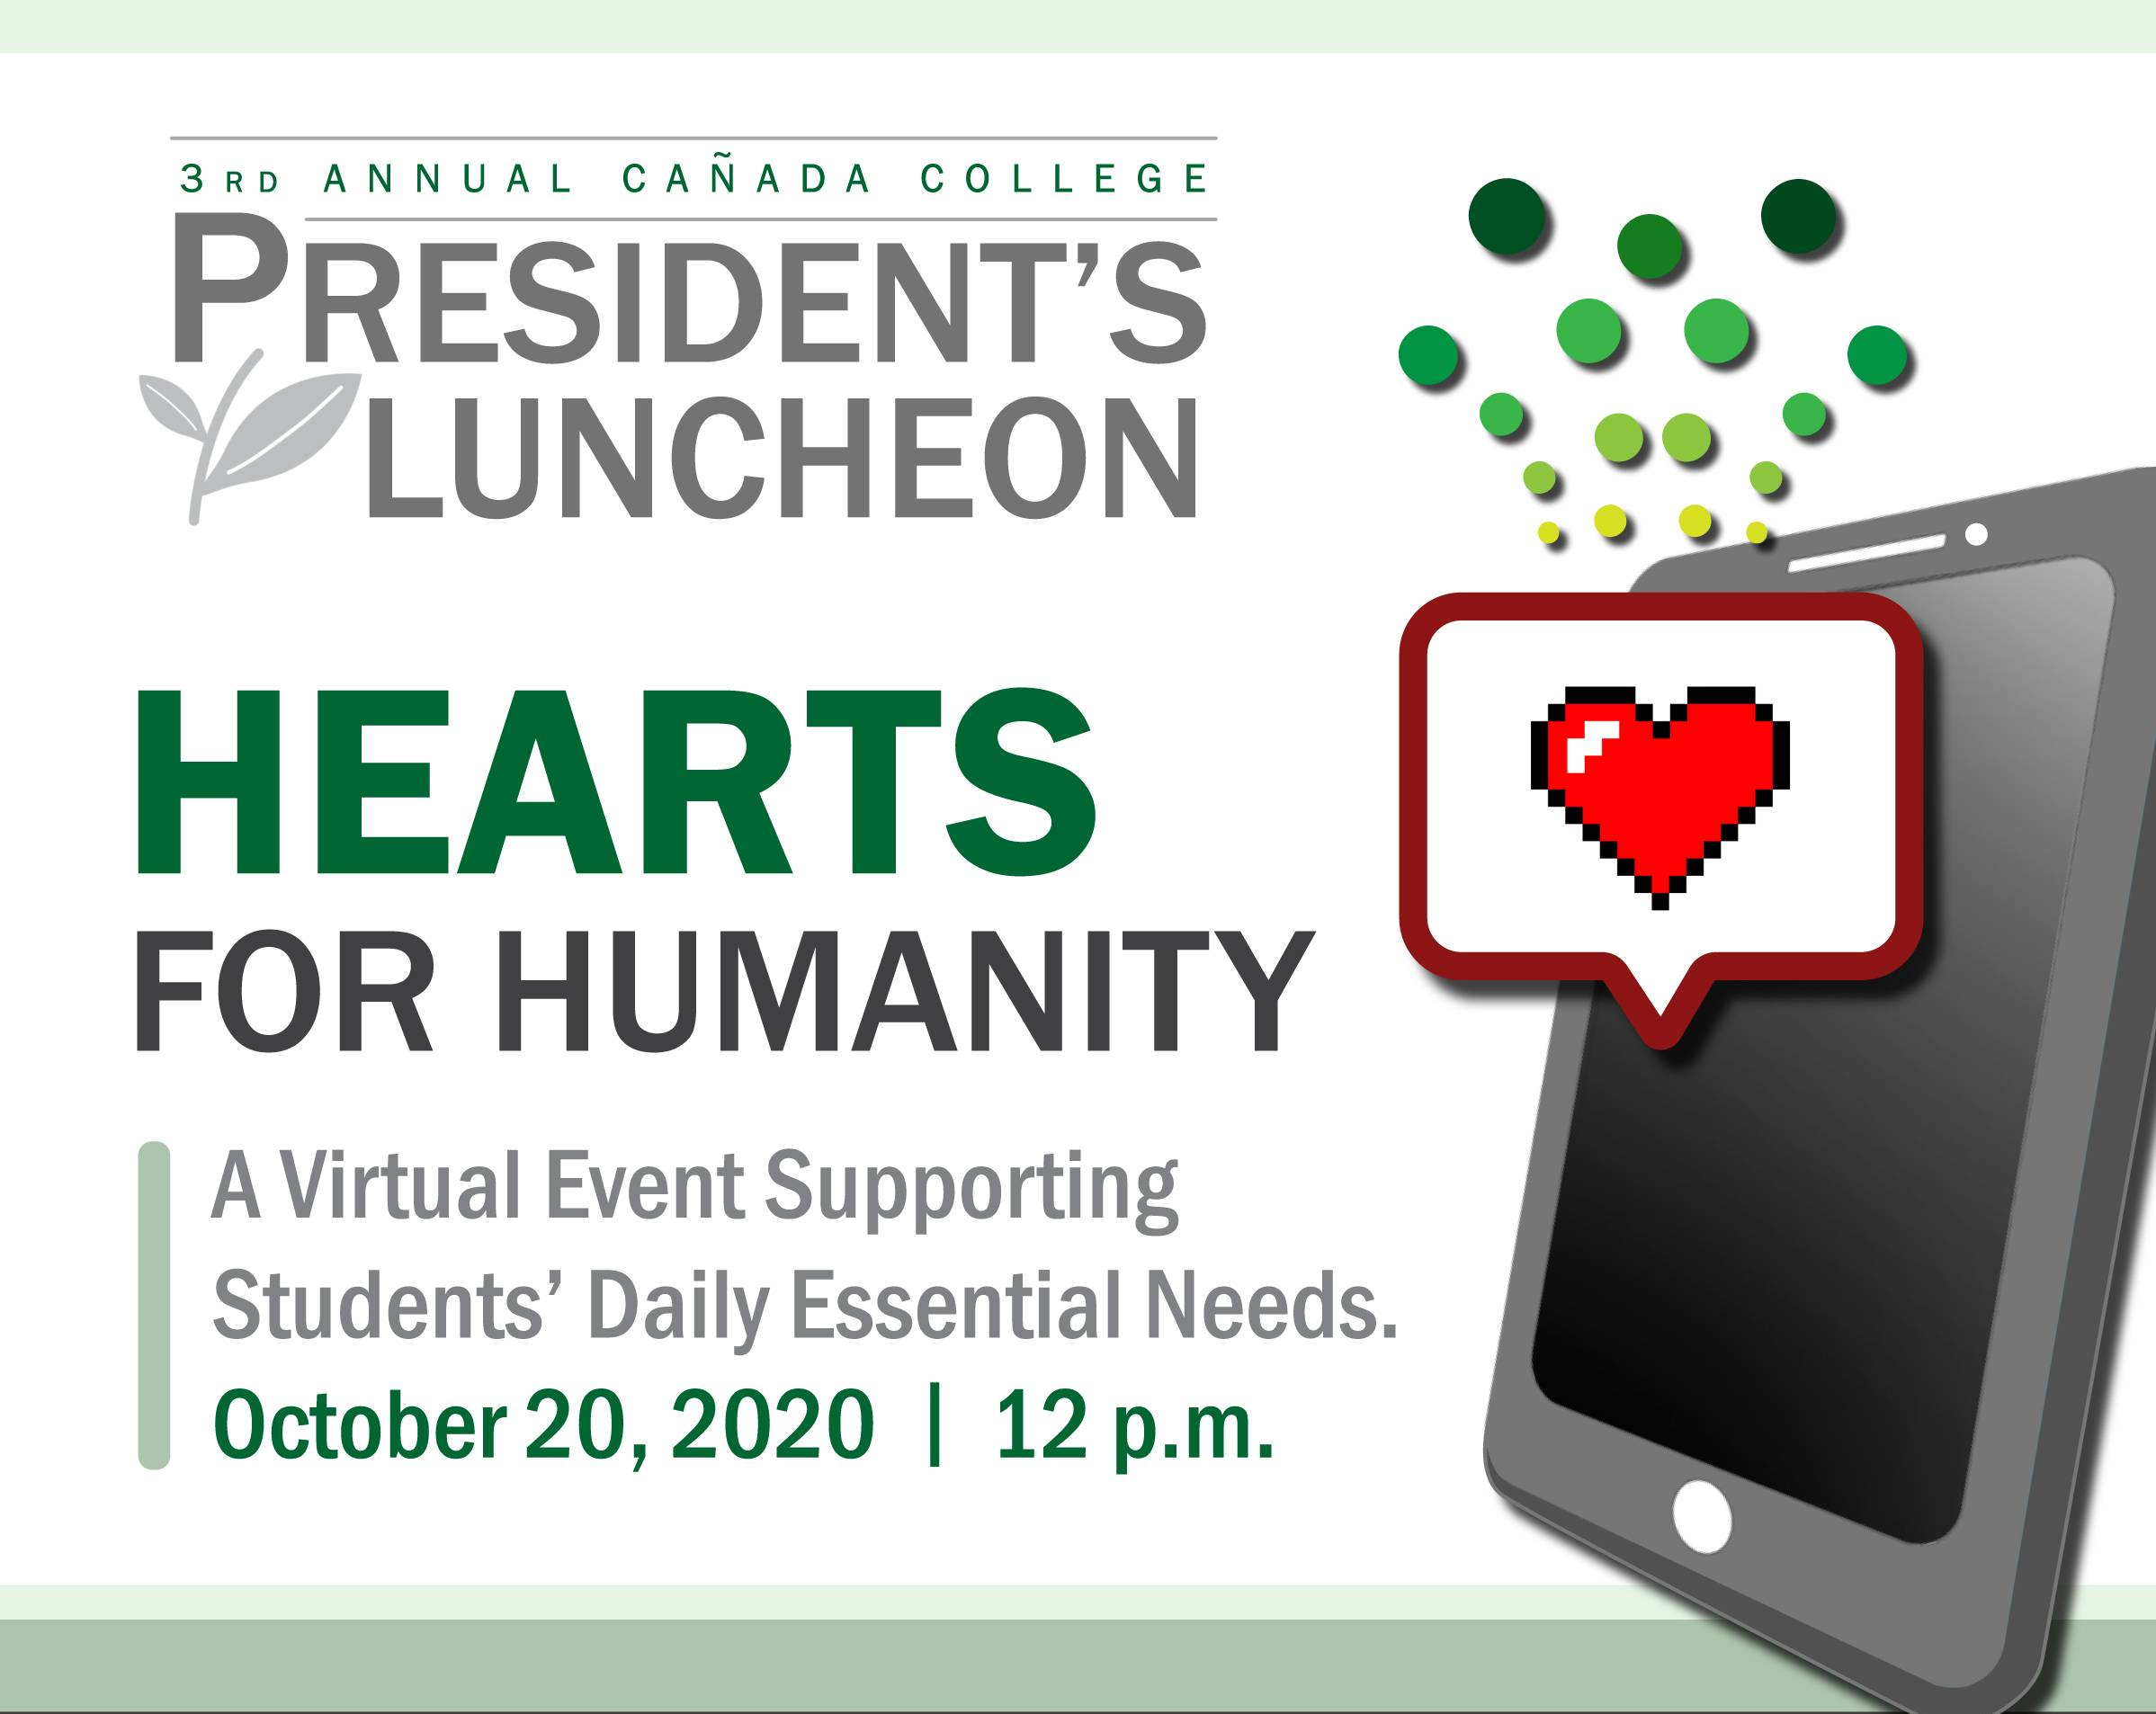 President Lucheon, Virtual Event - October 20, 2020 at 12p.m.